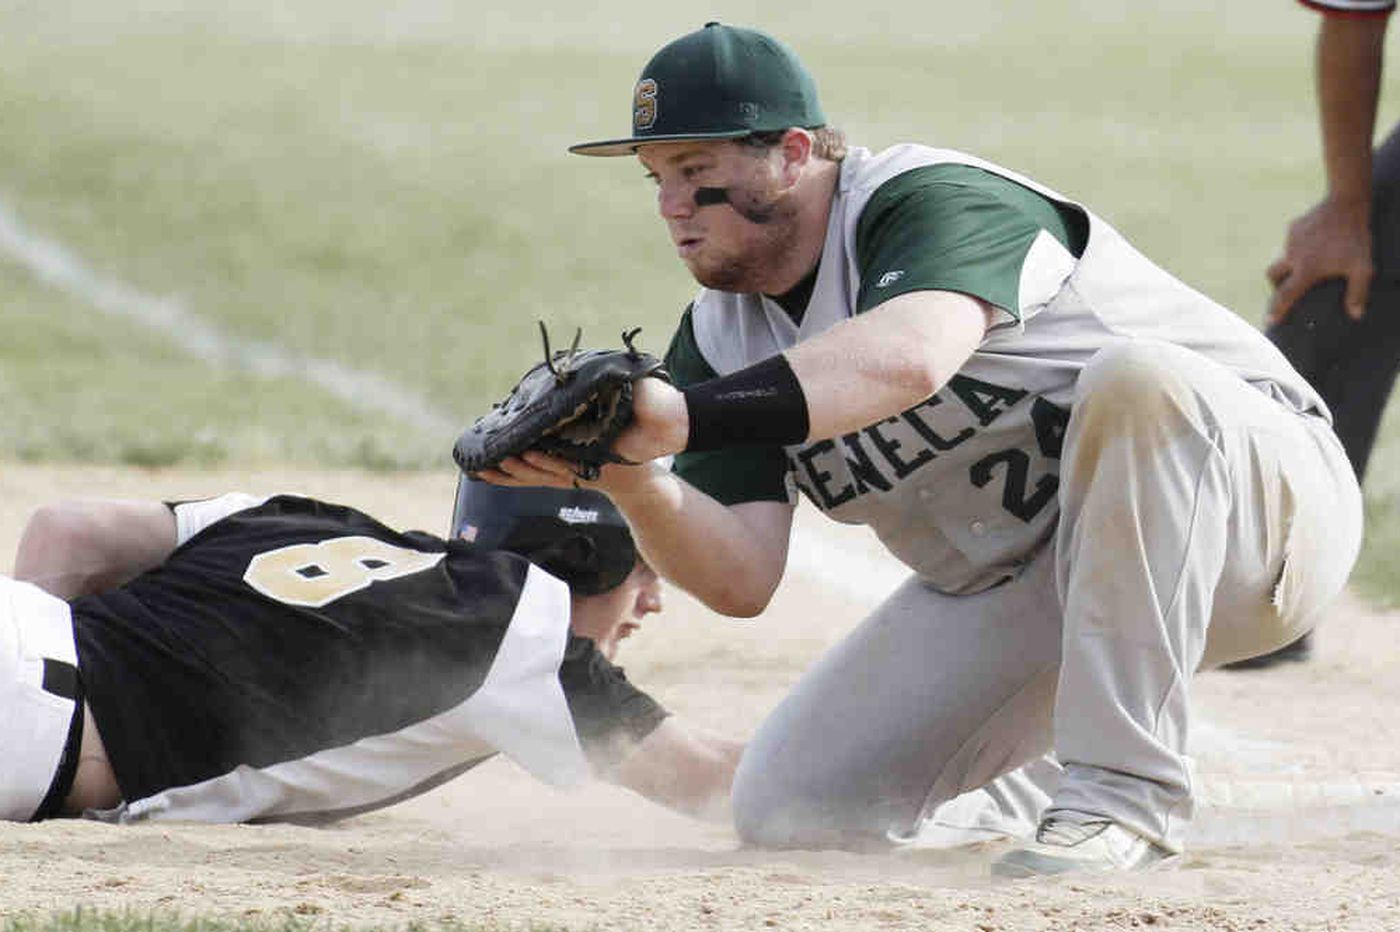 Seneca outscores Moorestown, 24-24, to win the South Jersey Group 3 baseball crown